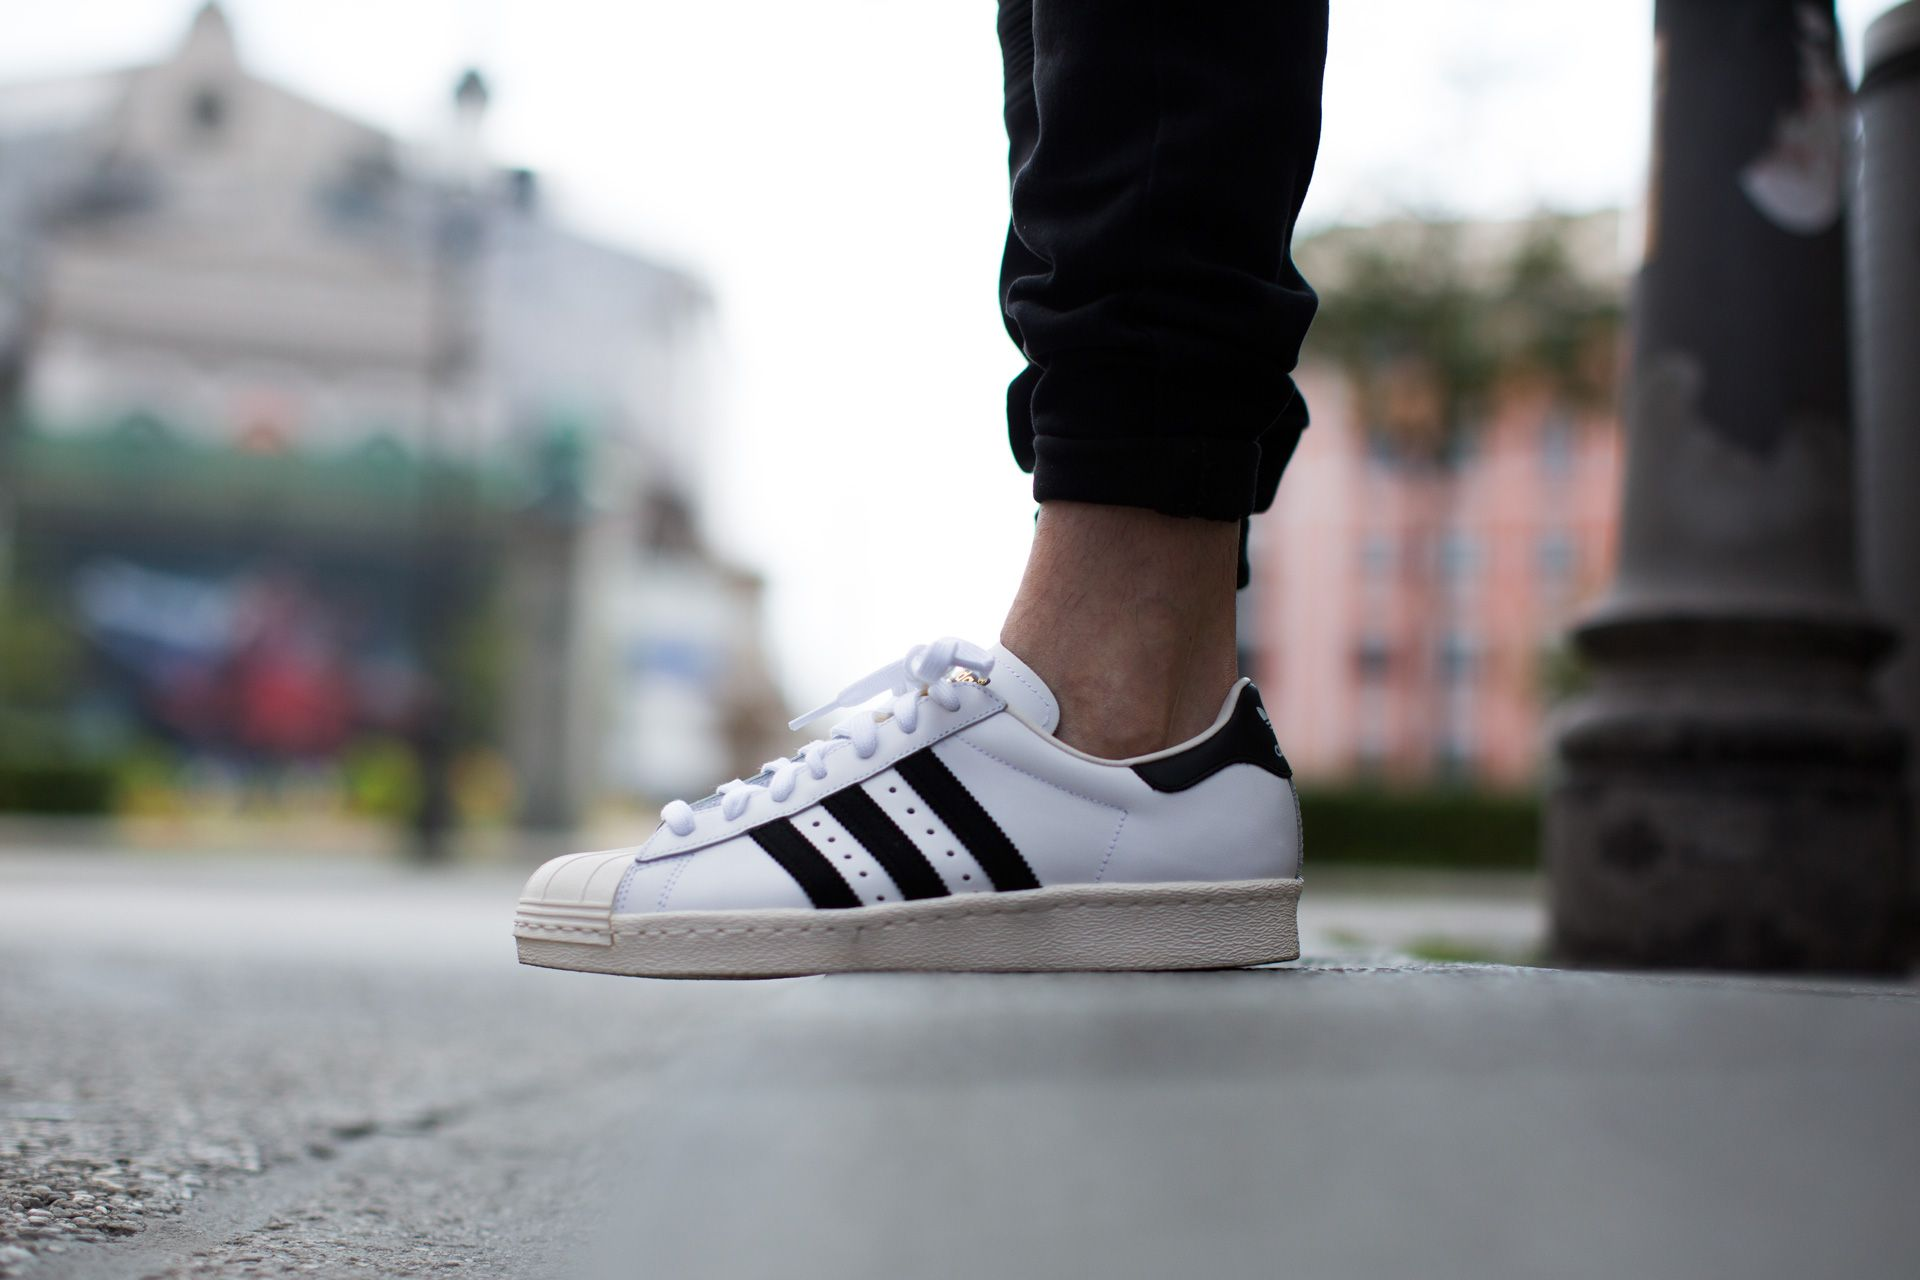 Cheap Superstar 80s Shoes for Sale, Buy Adidas Superstar 80s Online